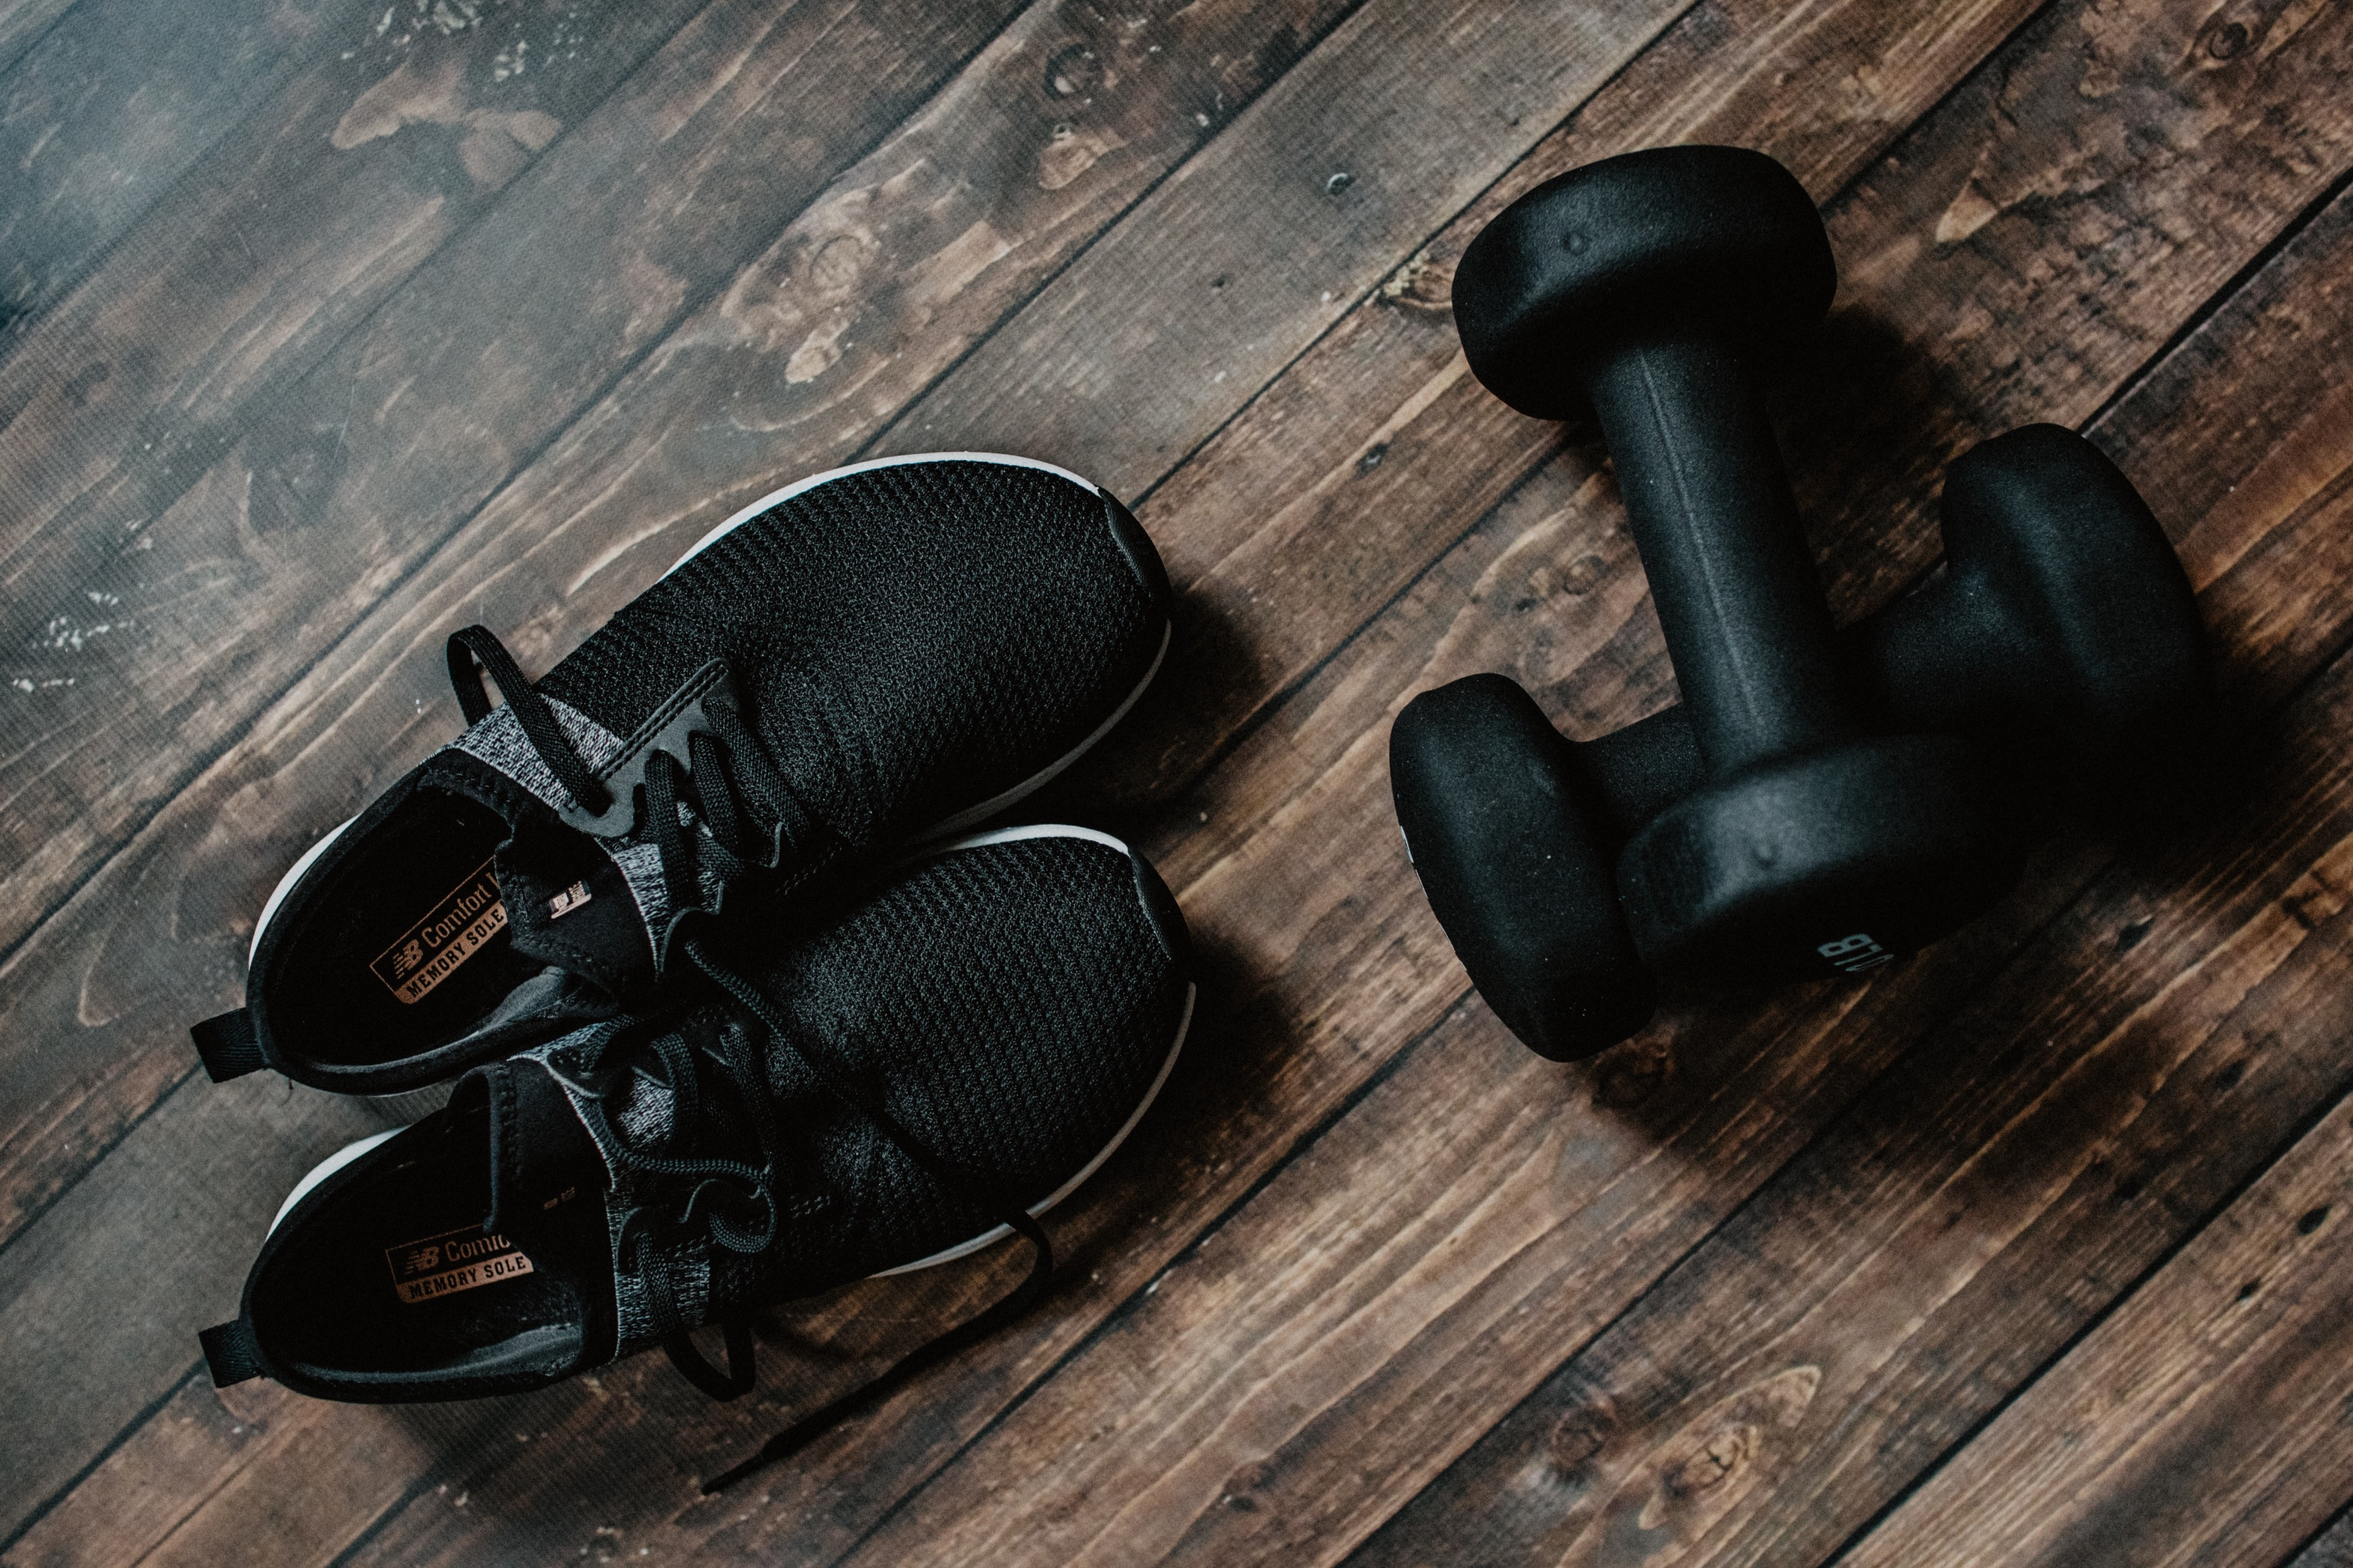 Black sneakers and hand weights on a wooden floor